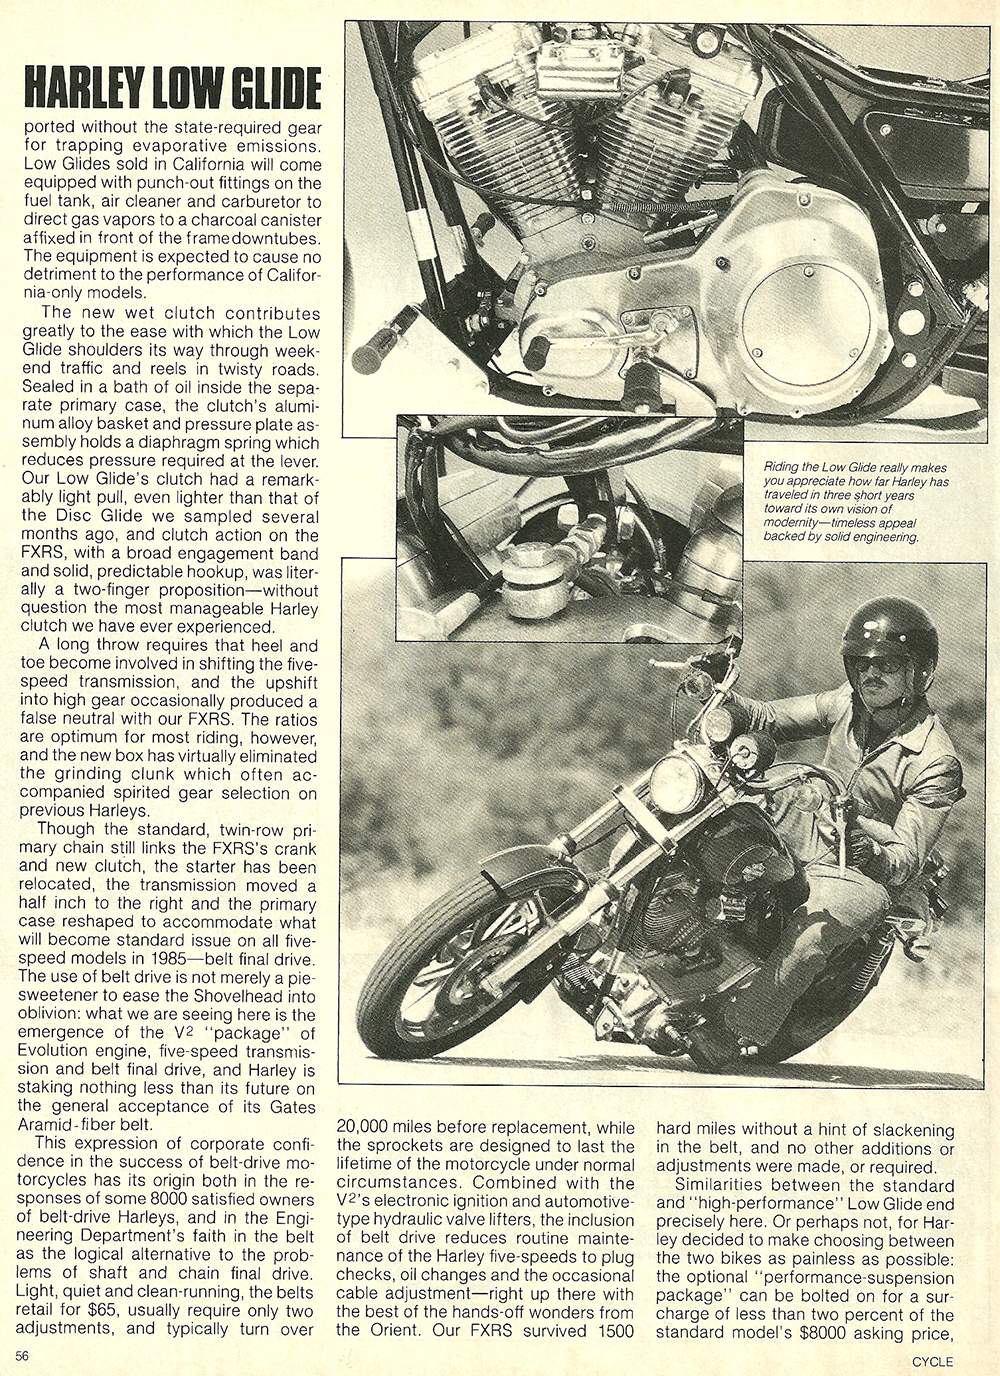 1984 Harley-Davidson Low Glide FXRS road test 7.jpg